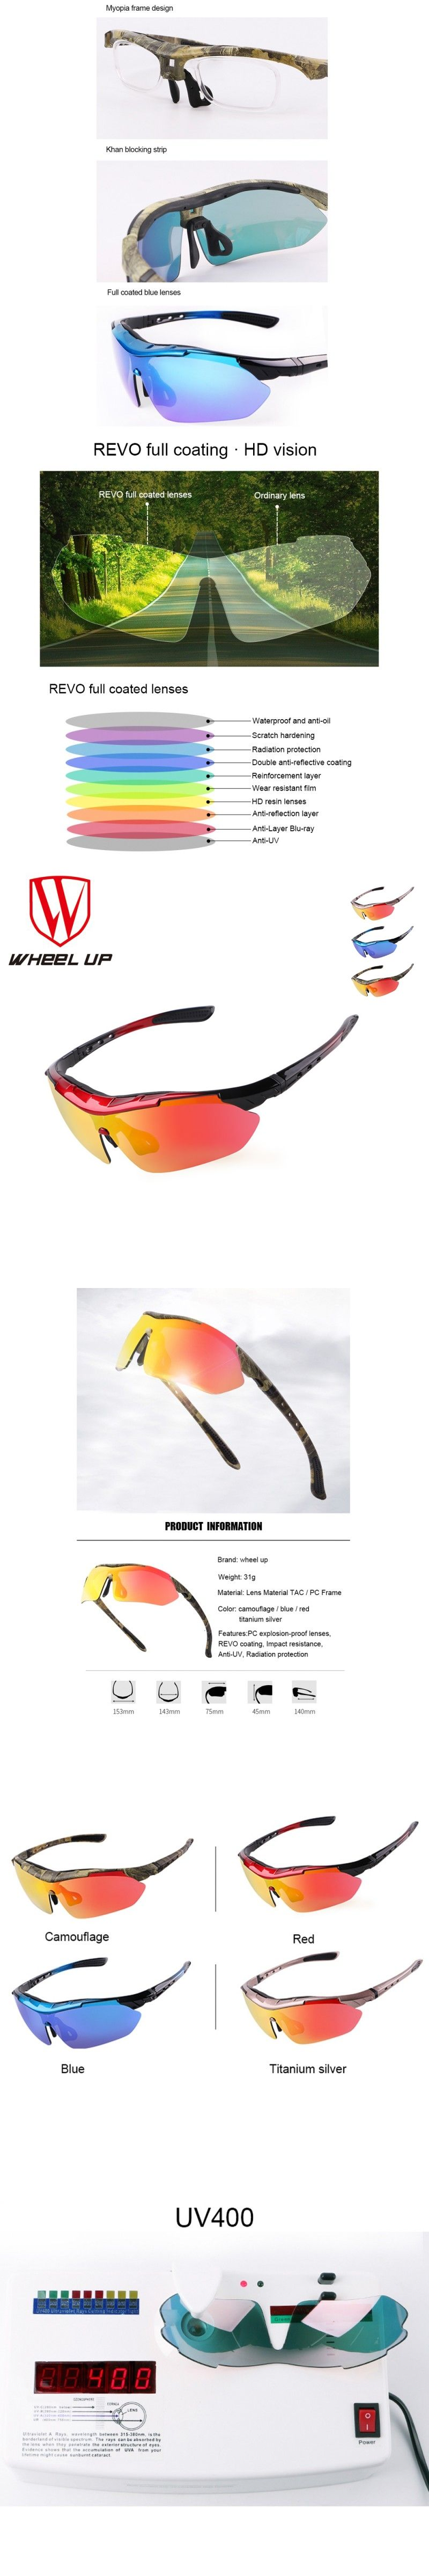 b7110d75f2 WHEEL UP Men Women Polarized Cycling Glasses UV400 Sport Sunglasses  Waterproof Full Coating MTB Road Unique